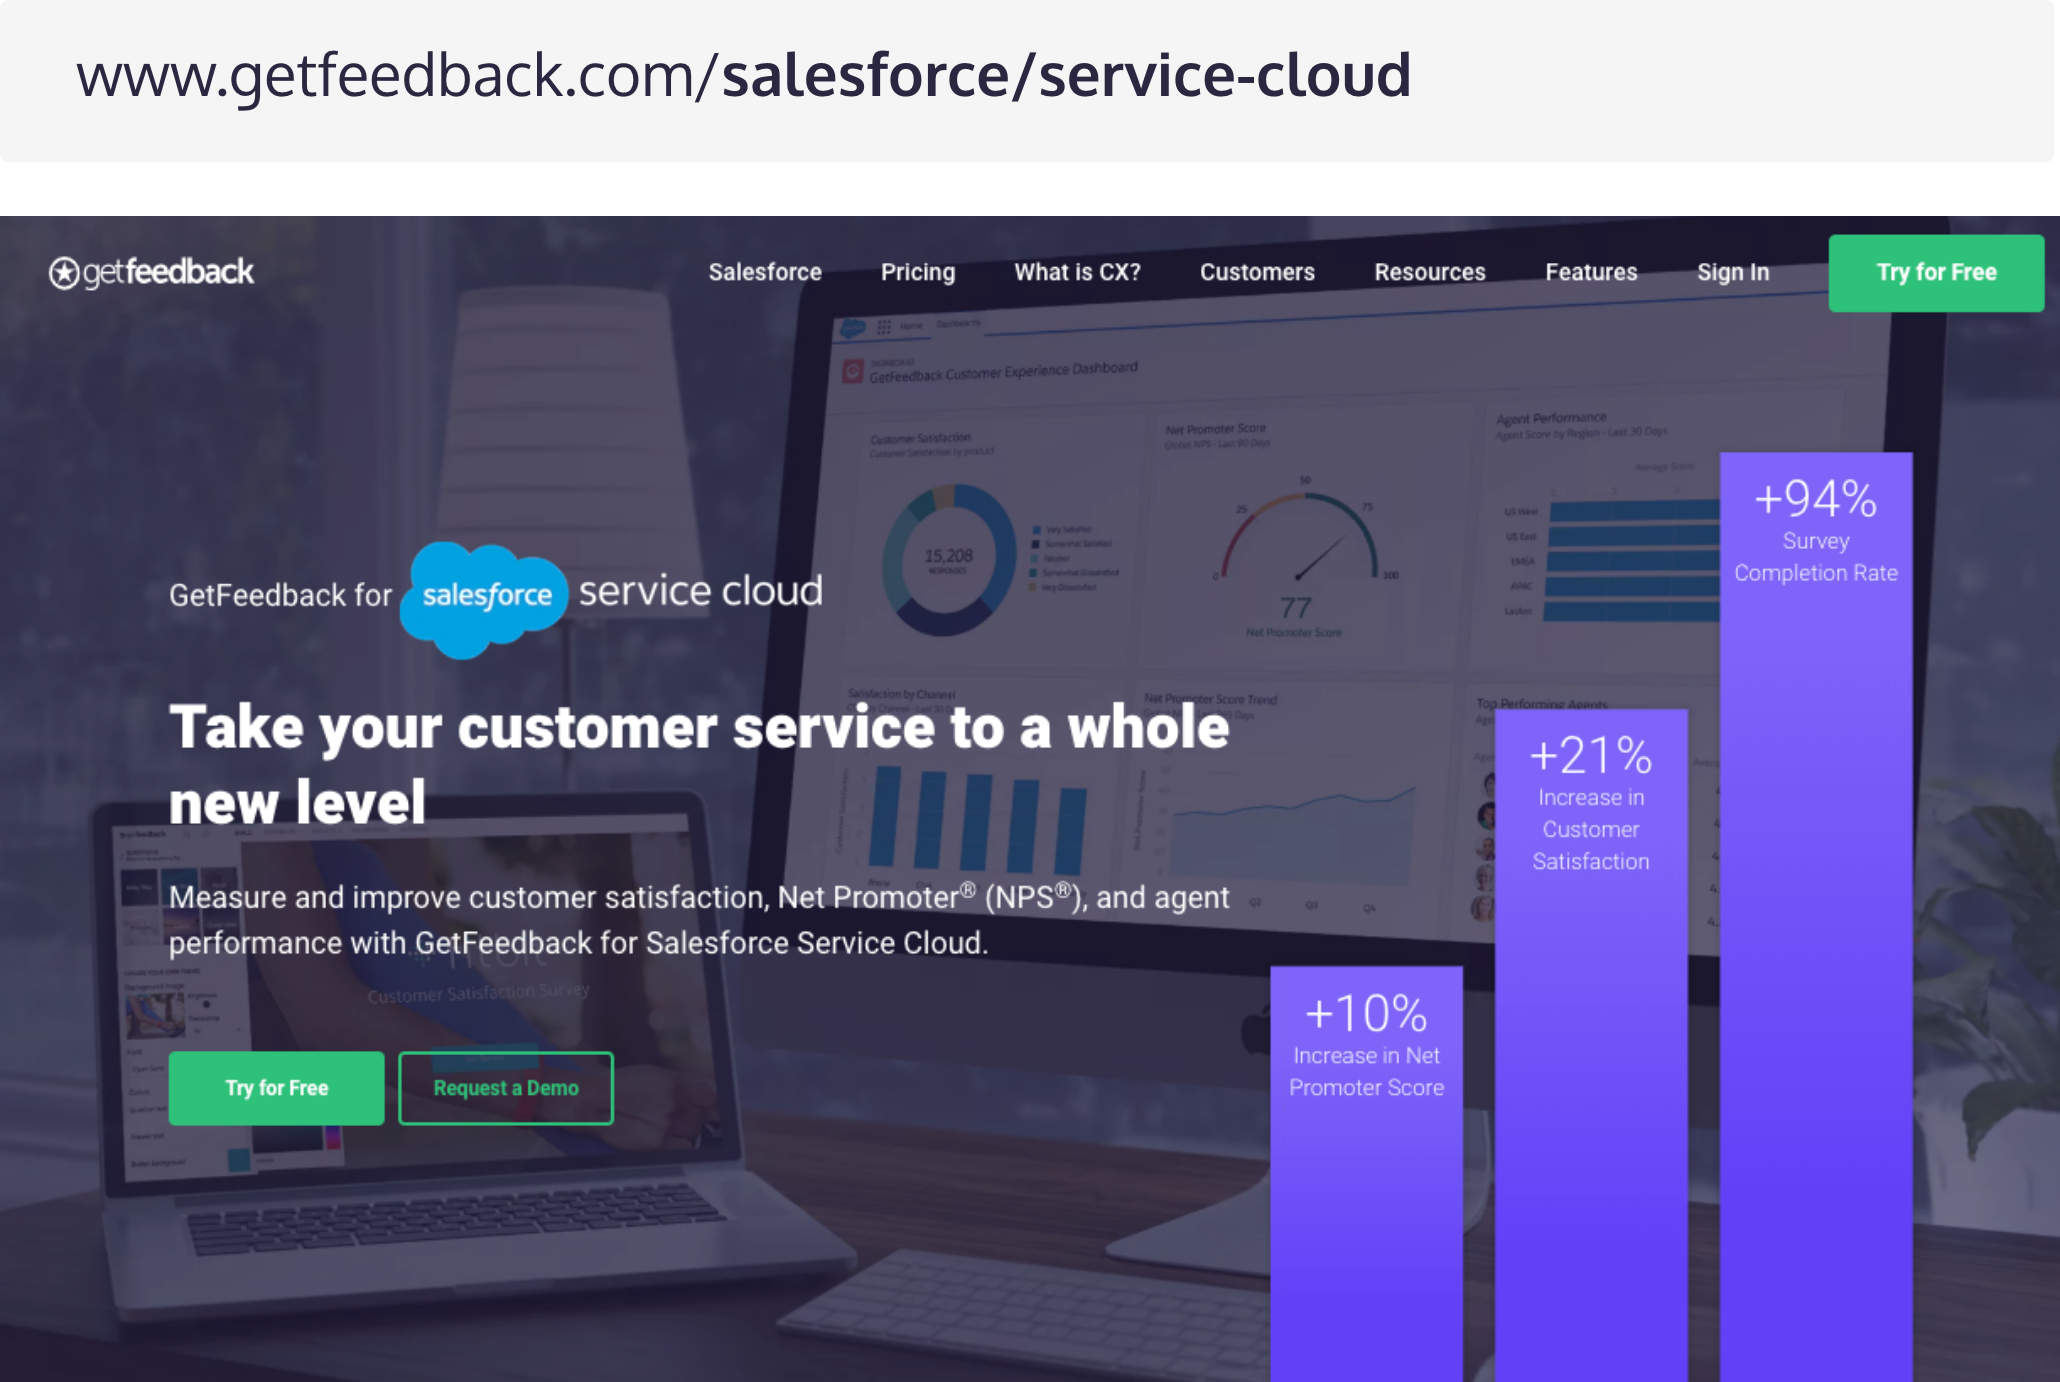 Product Pages B2B Lead Generation - GetFeedback